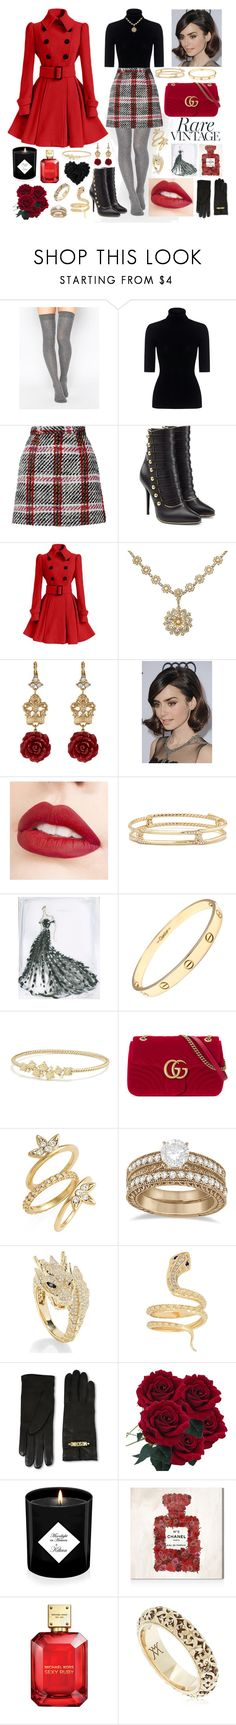 """""""Winter with a Sprinkle of Vintage"""" by megan-maddalena ❤ liked on Polyvore featuring ASOS, Theory, Carven, Balmain, Dolce&Gabbana, COS, Jouer, David Yurman, Cartier and Gucci"""